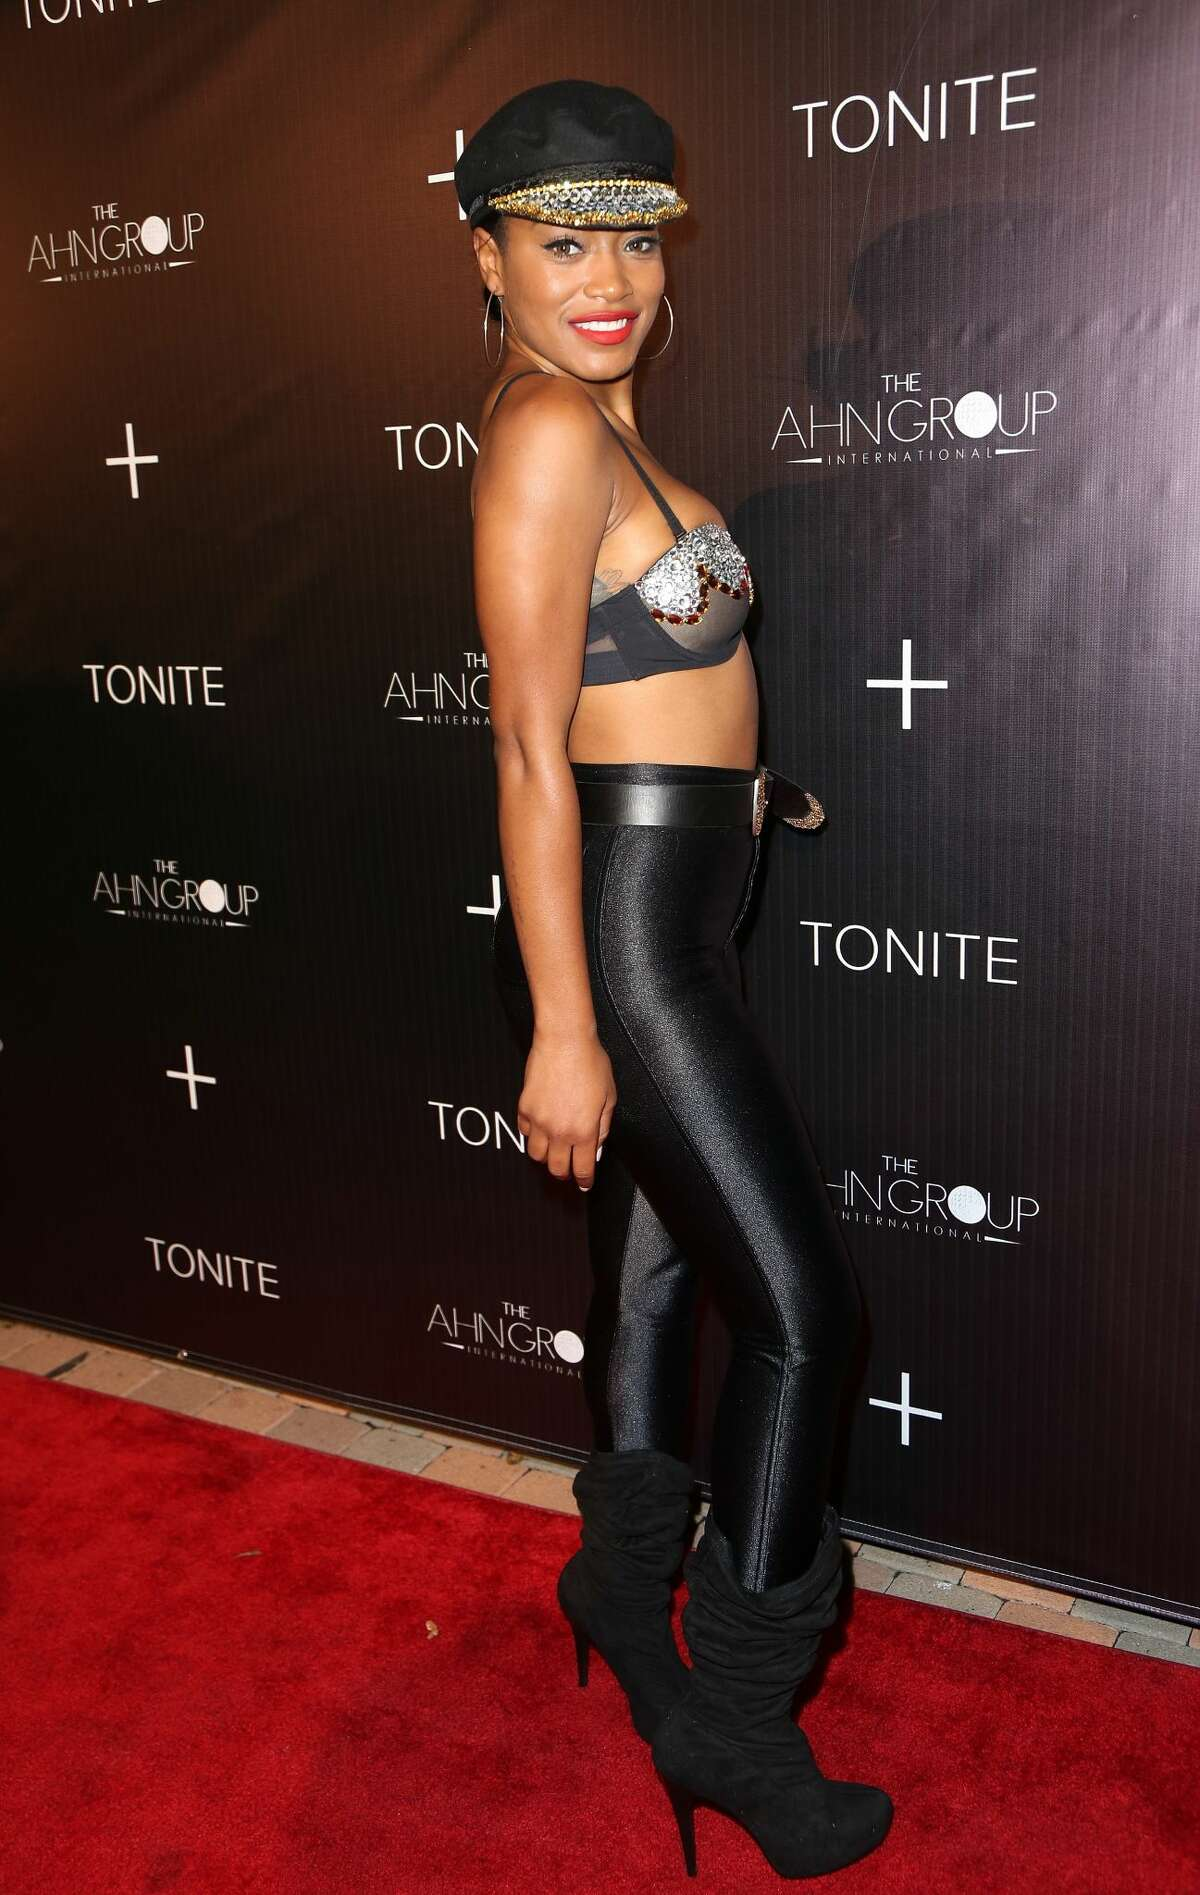 HOLLYWOOD, CA - OCTOBER 30: Actress KeKe Palmer attends the 2nd Annual Tonite Halloween Bash hosted by Justin Combs on October 30, 2016 in Hollywood, California. (Photo by Maury Phillips/Getty Images)